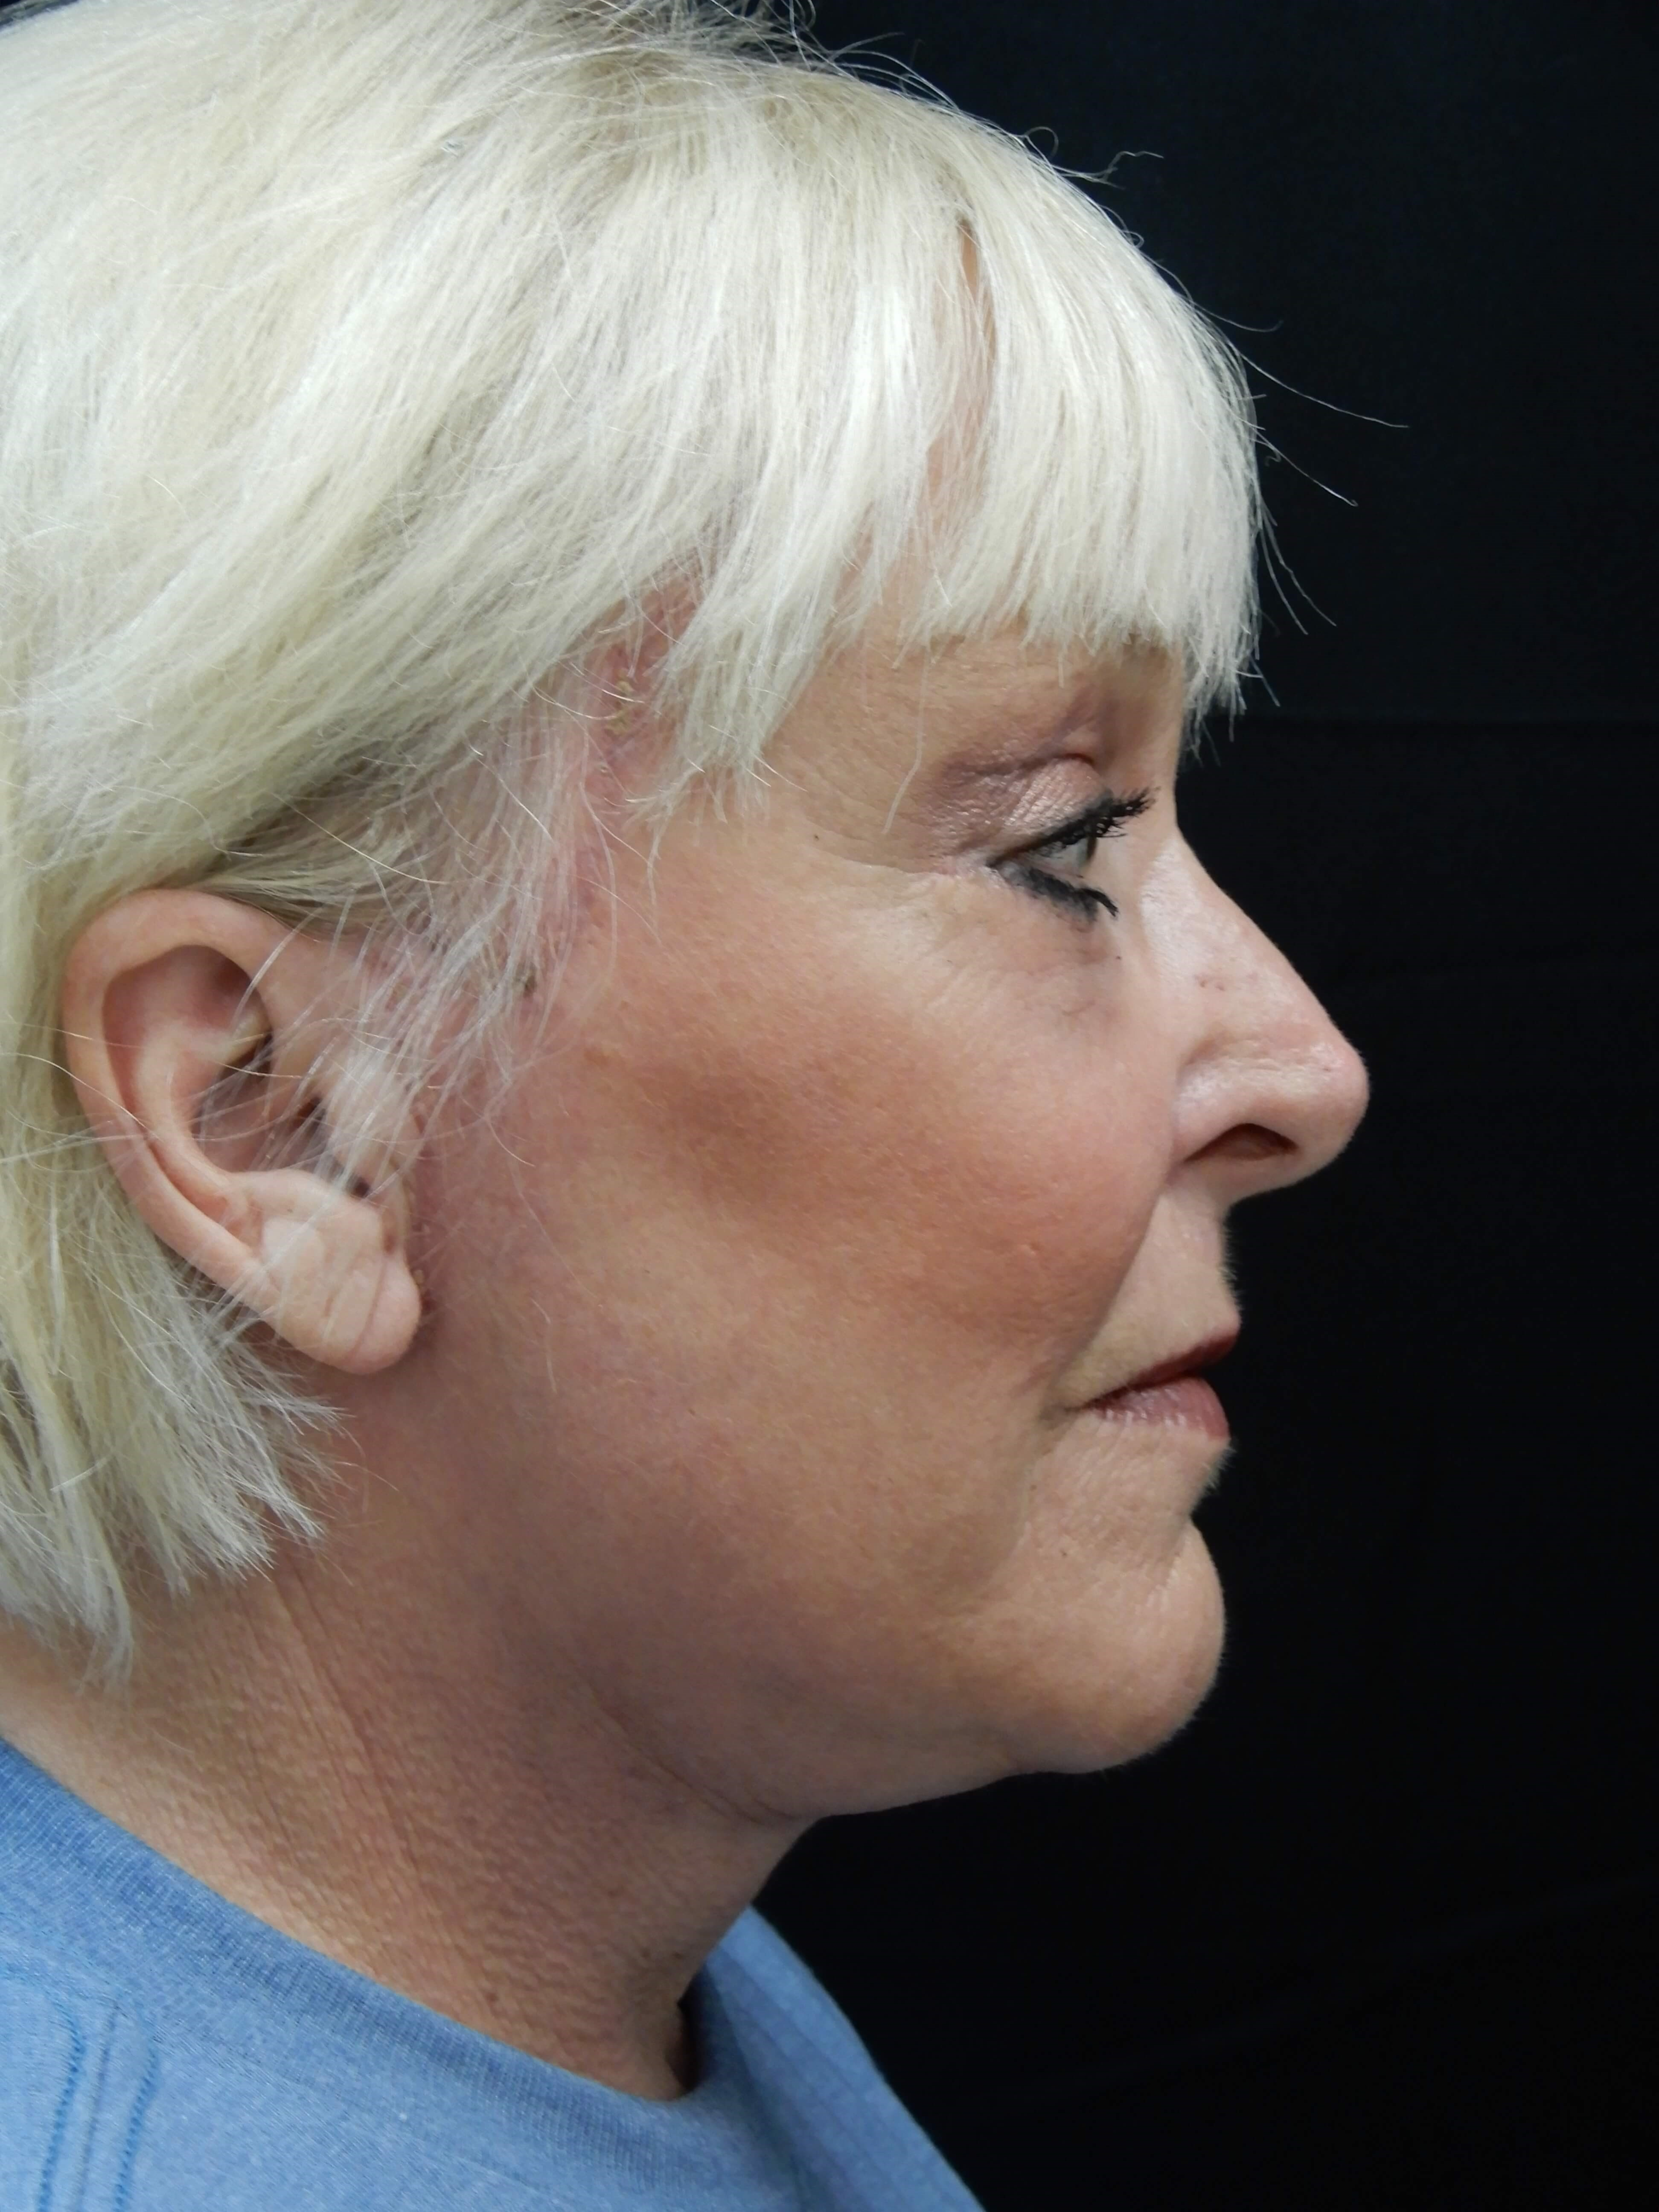 Smartlift - Blepharoplasty After